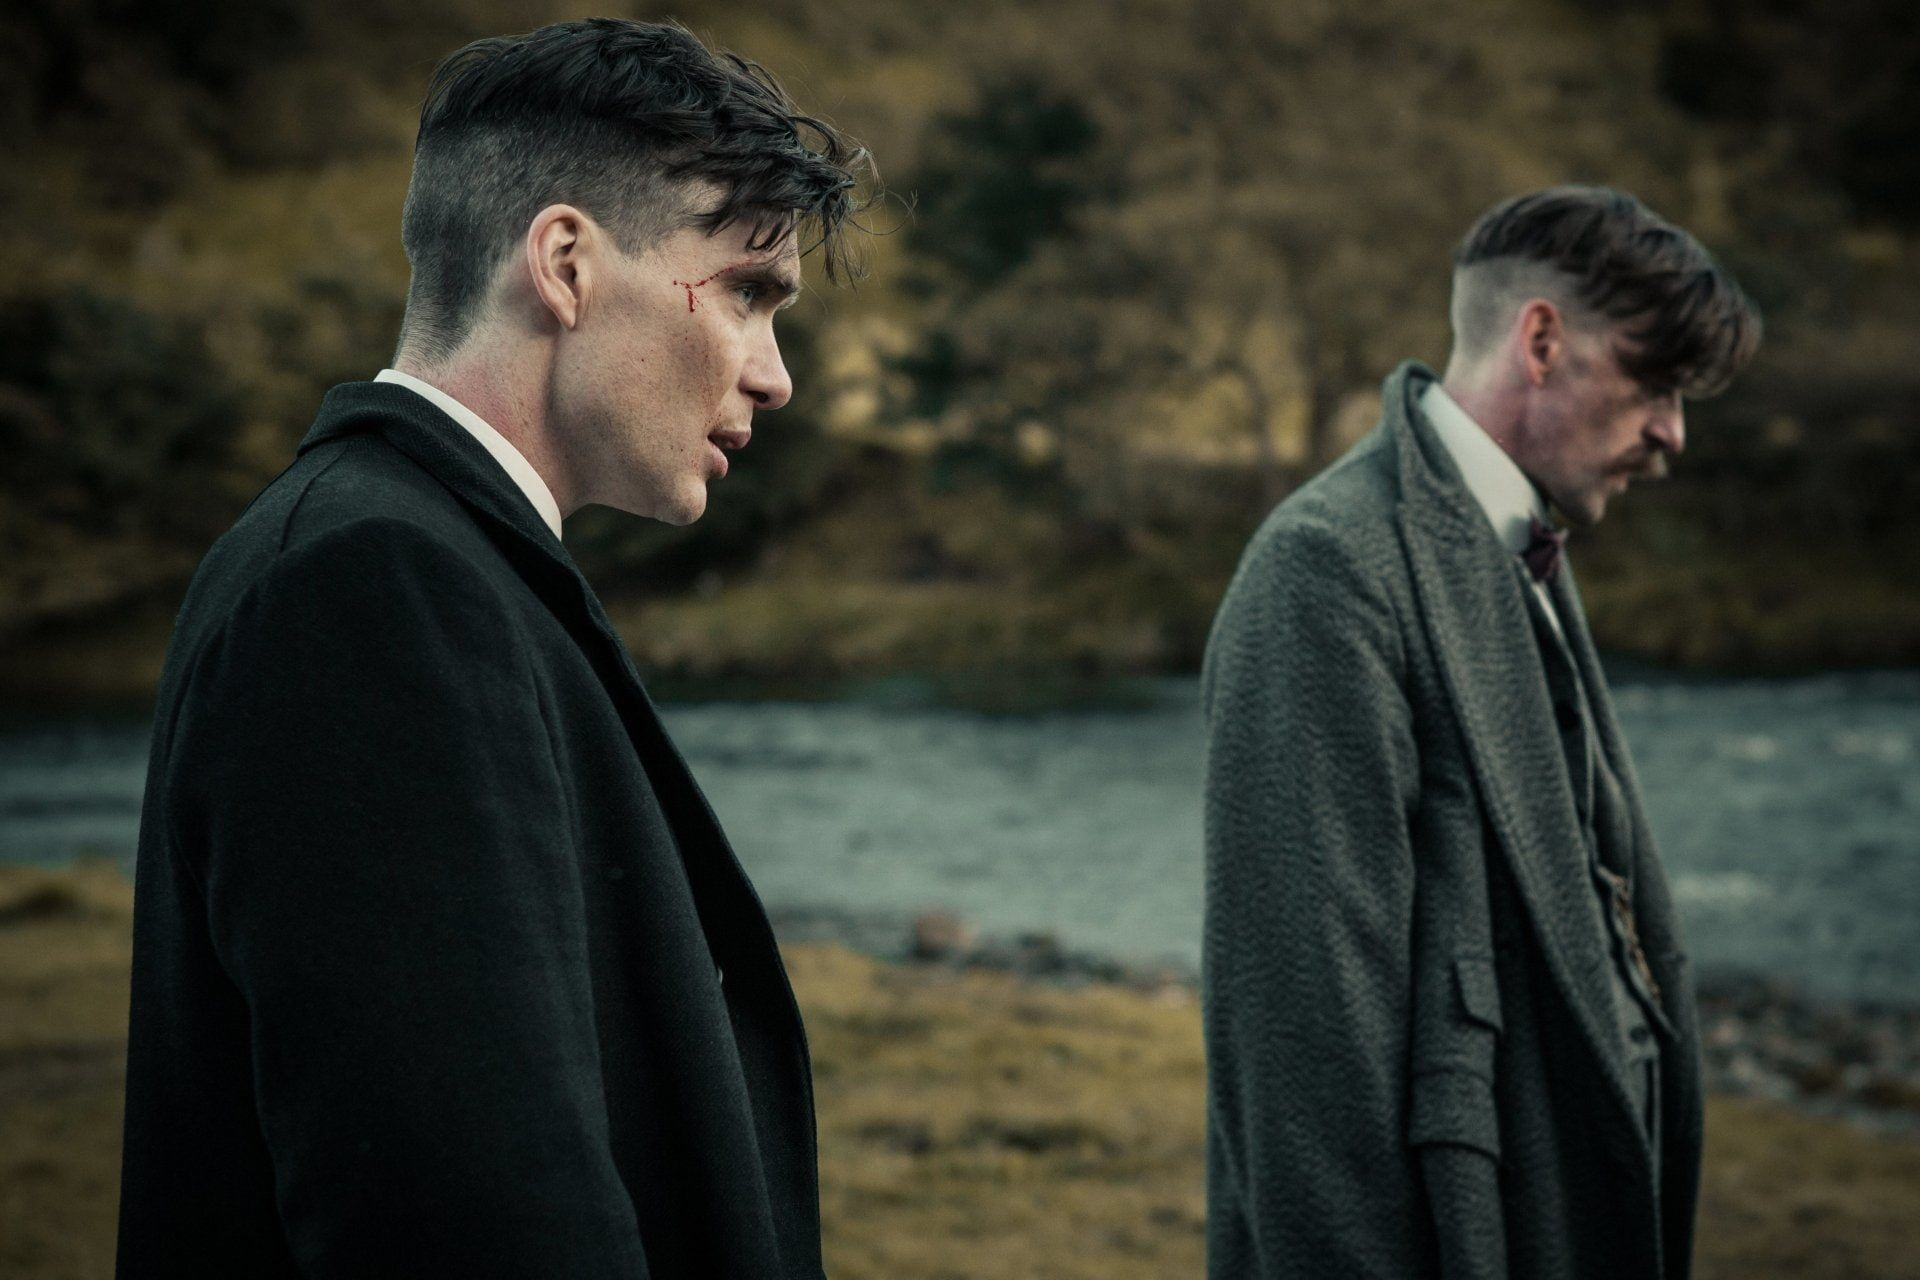 1920x1080 Peaky Blinders Wallpapers Hd Desktop And Mobile Backgrounds 1920x1080 Peaky Blinders Wallpaper Peaky Blinders Mens Hats Fashion